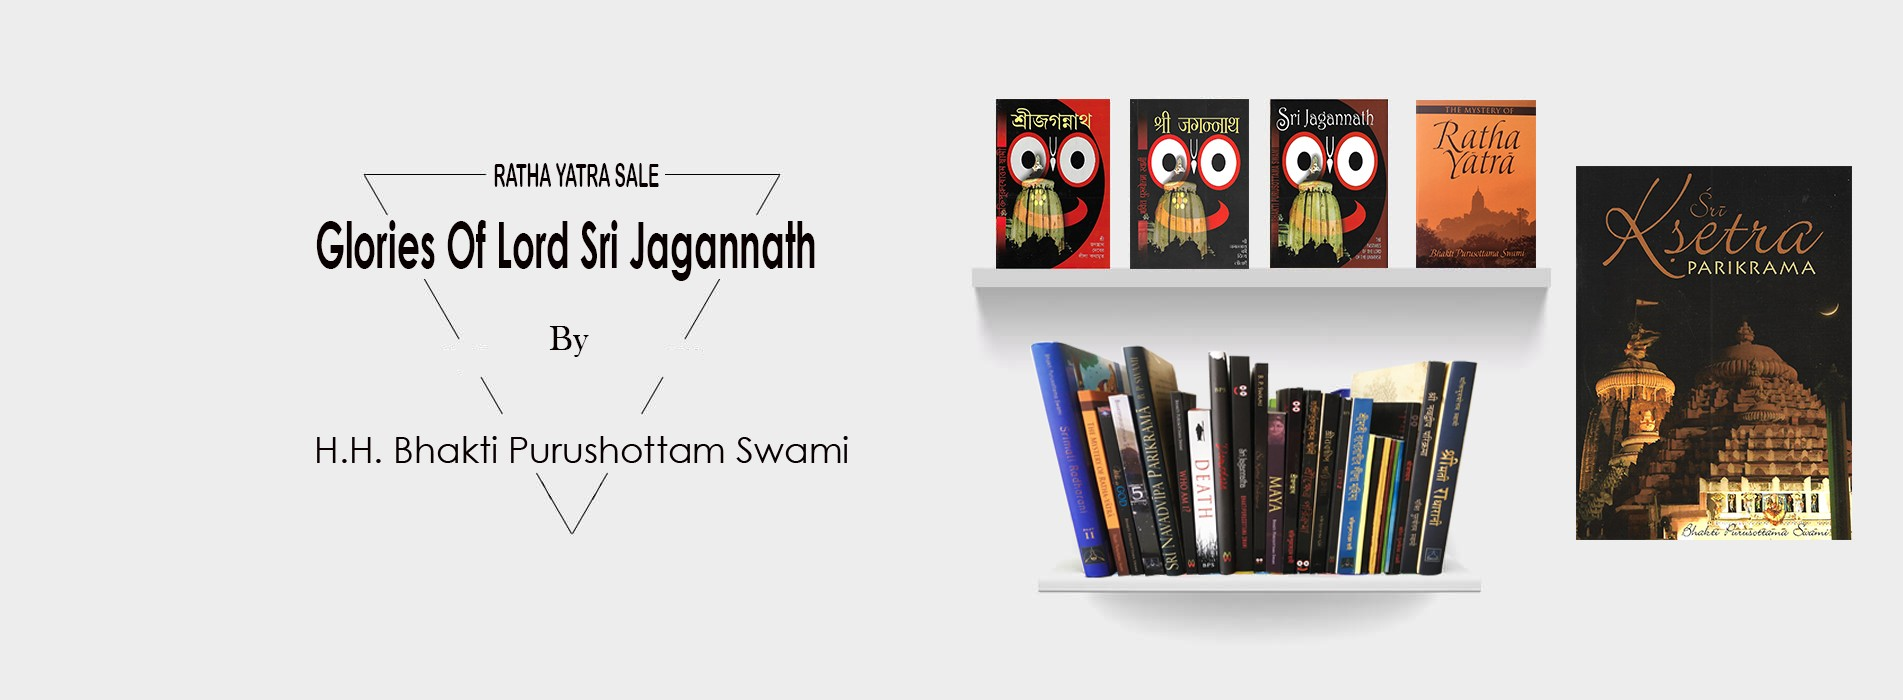 Glories of Lord Jagannath